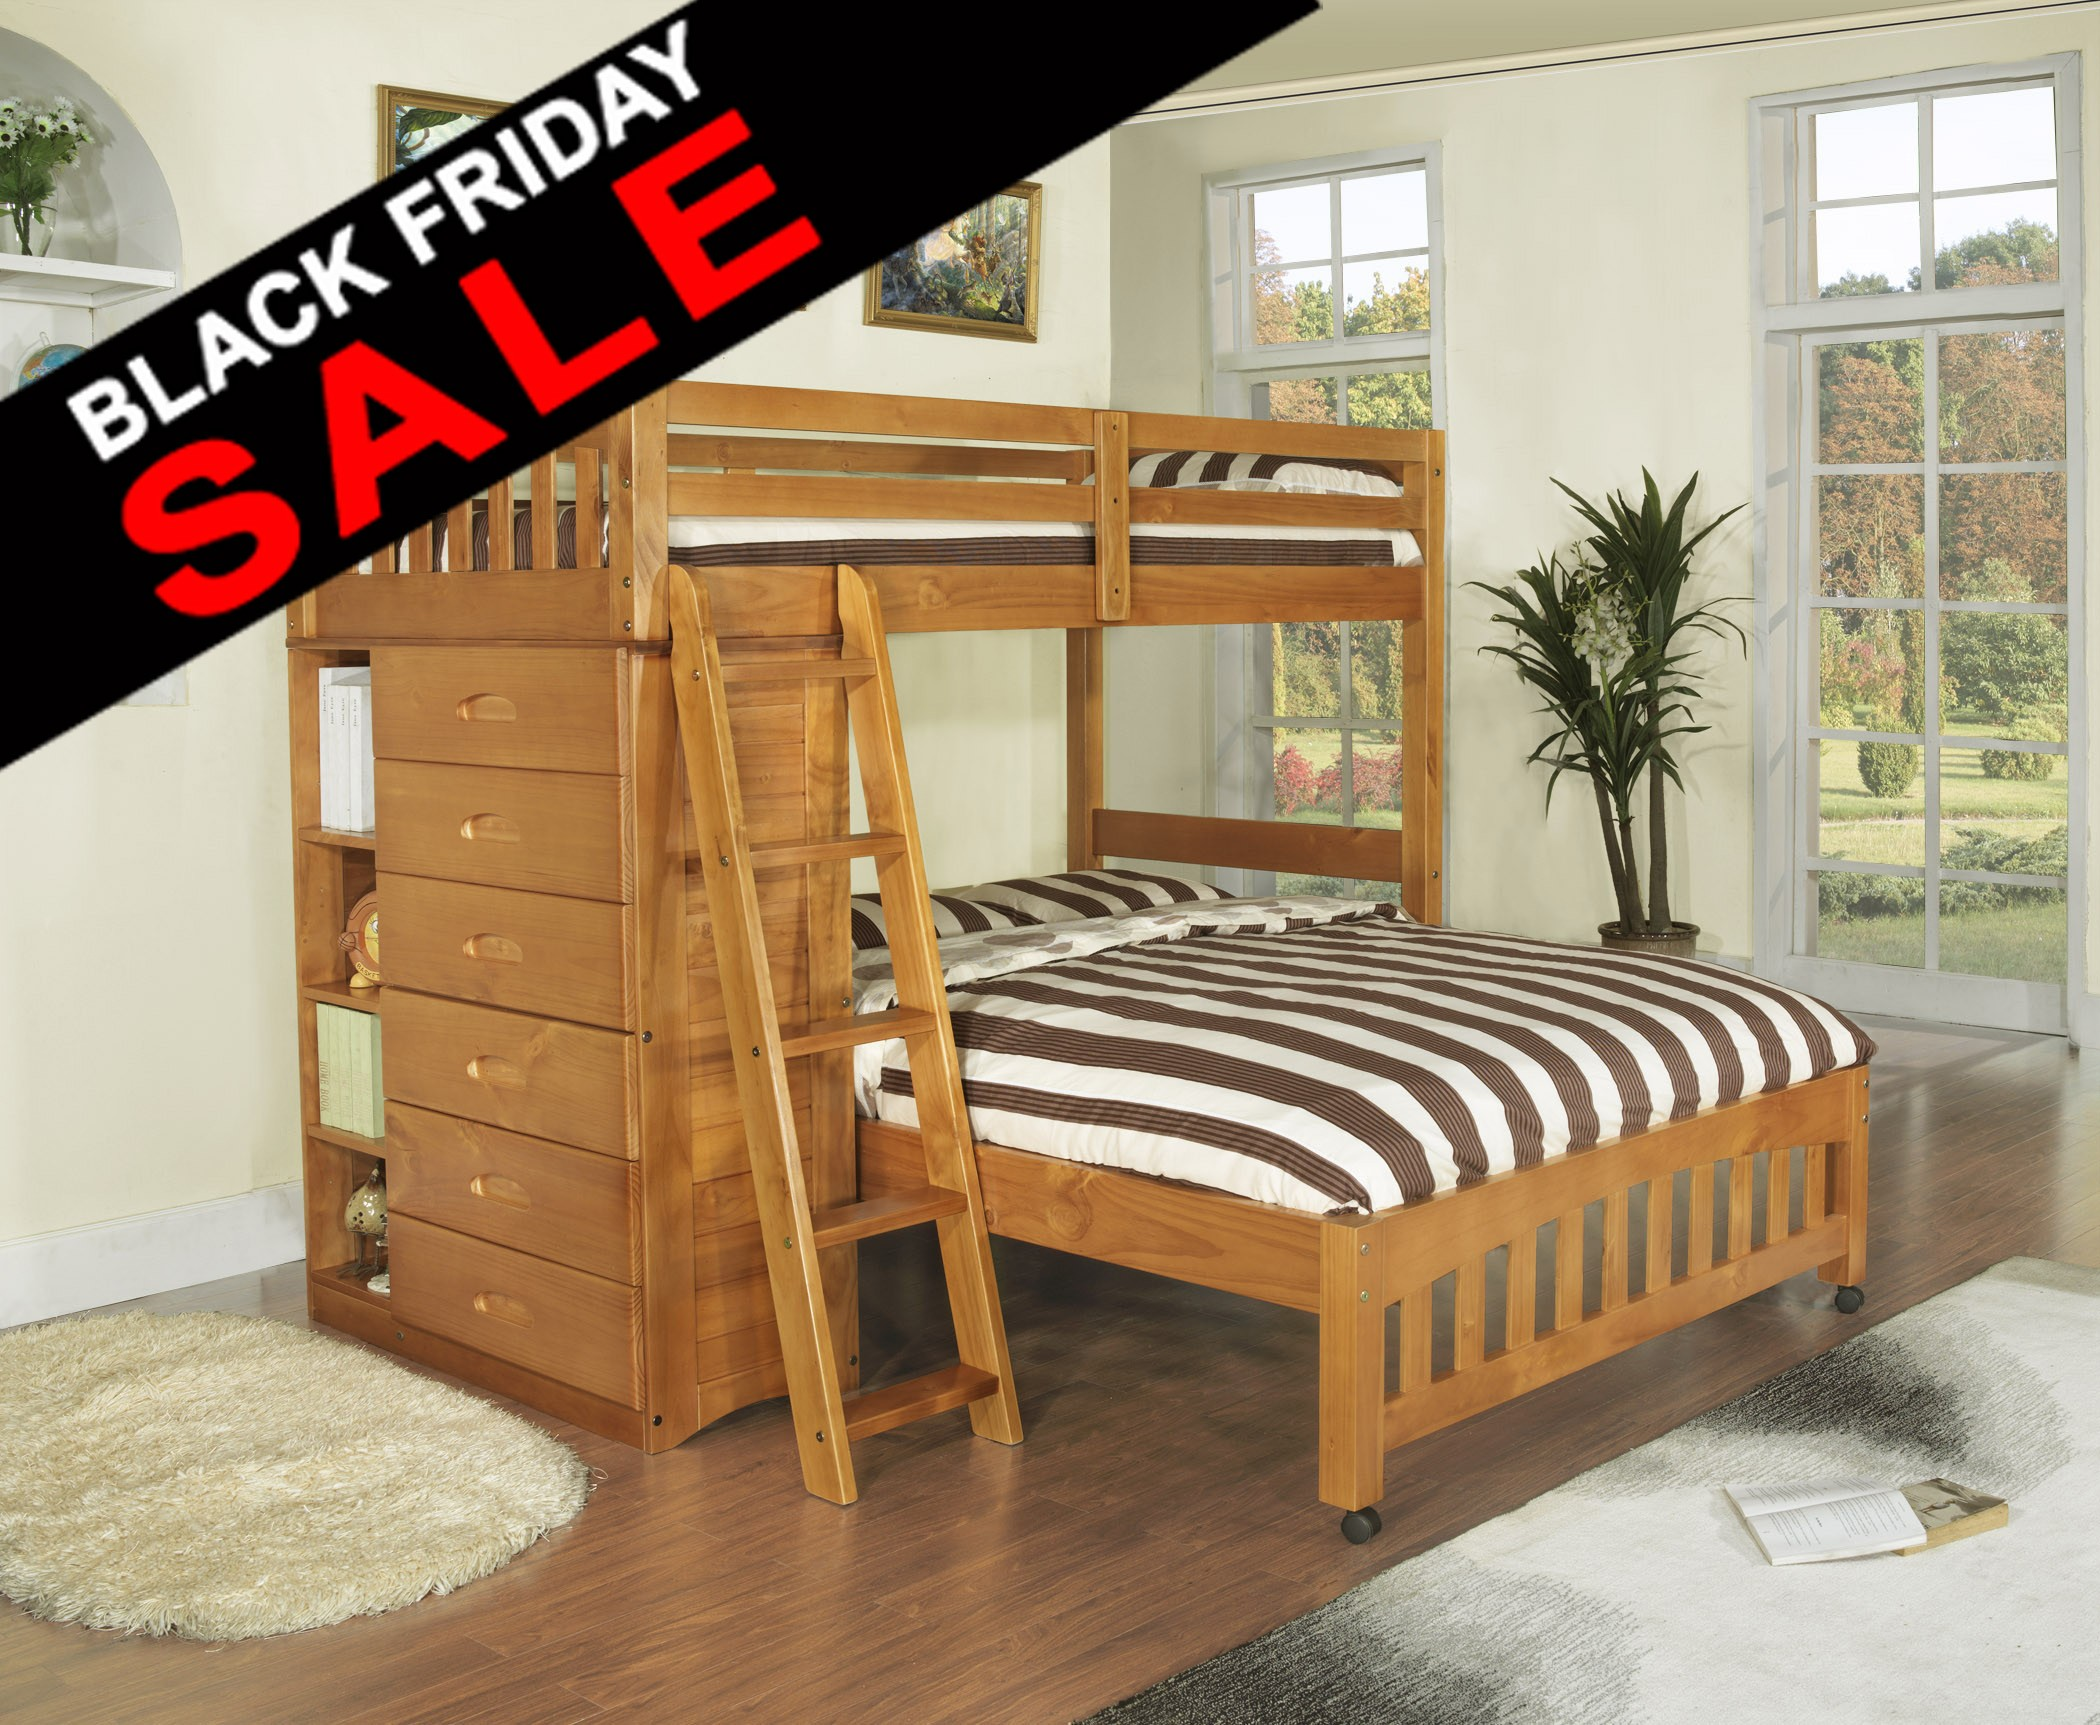 Affordable Bedroom Sets And More Great Deals Available On Factory Bedroom